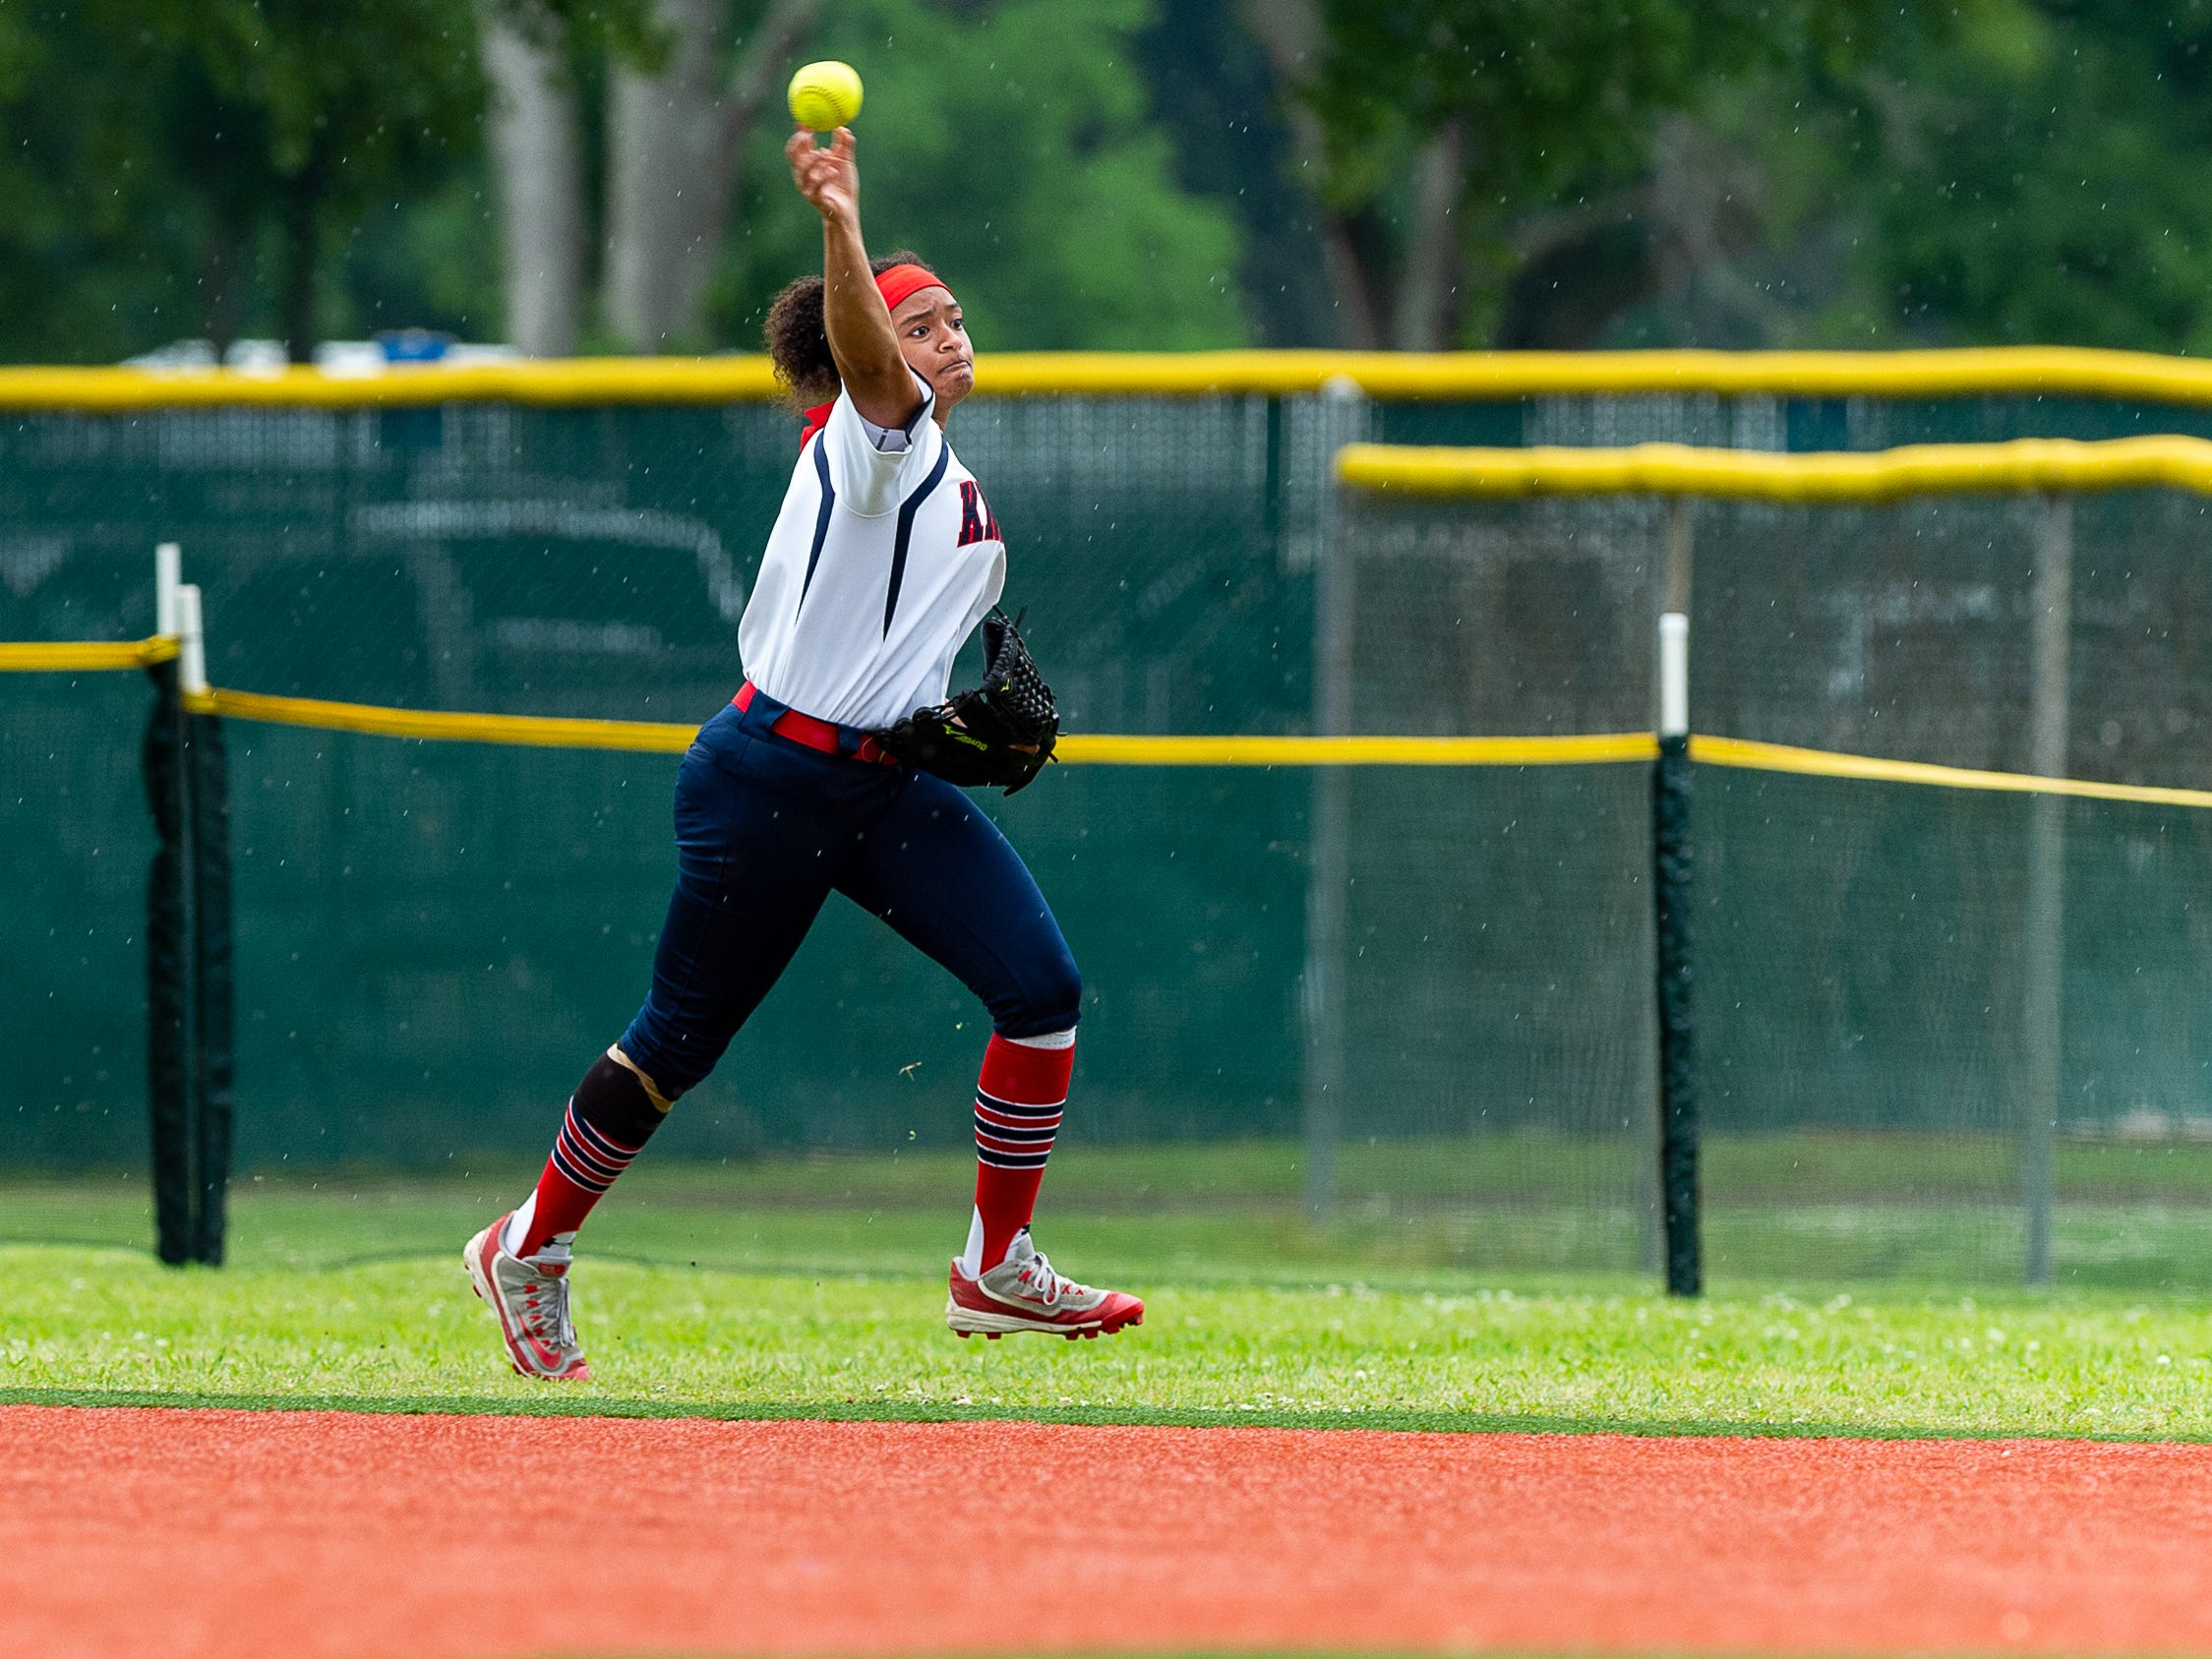 Outfielder Janae Duffy as Lafayette Christian Academy softball takes on University Academy in the forst round of the LHSAA playoffs. Friday, April 12, 2019.